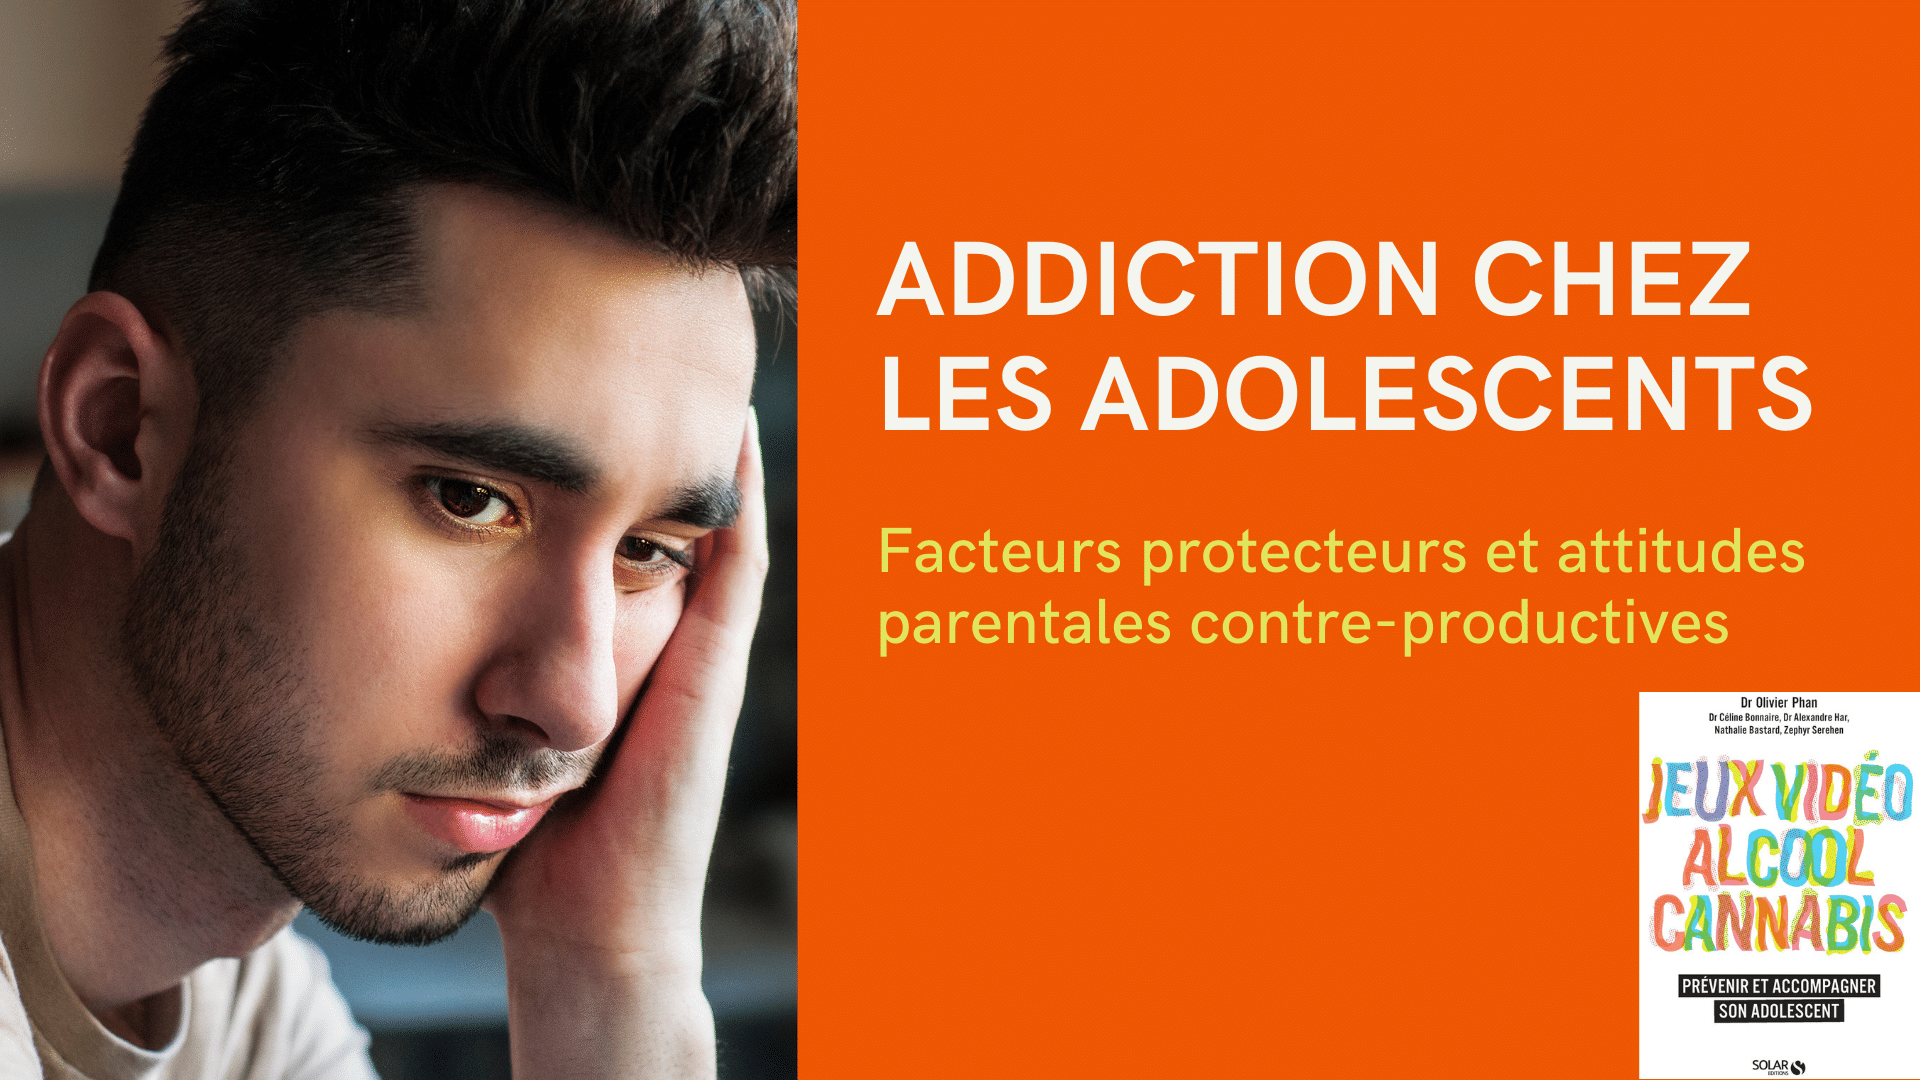 Addiction chez les adolescents